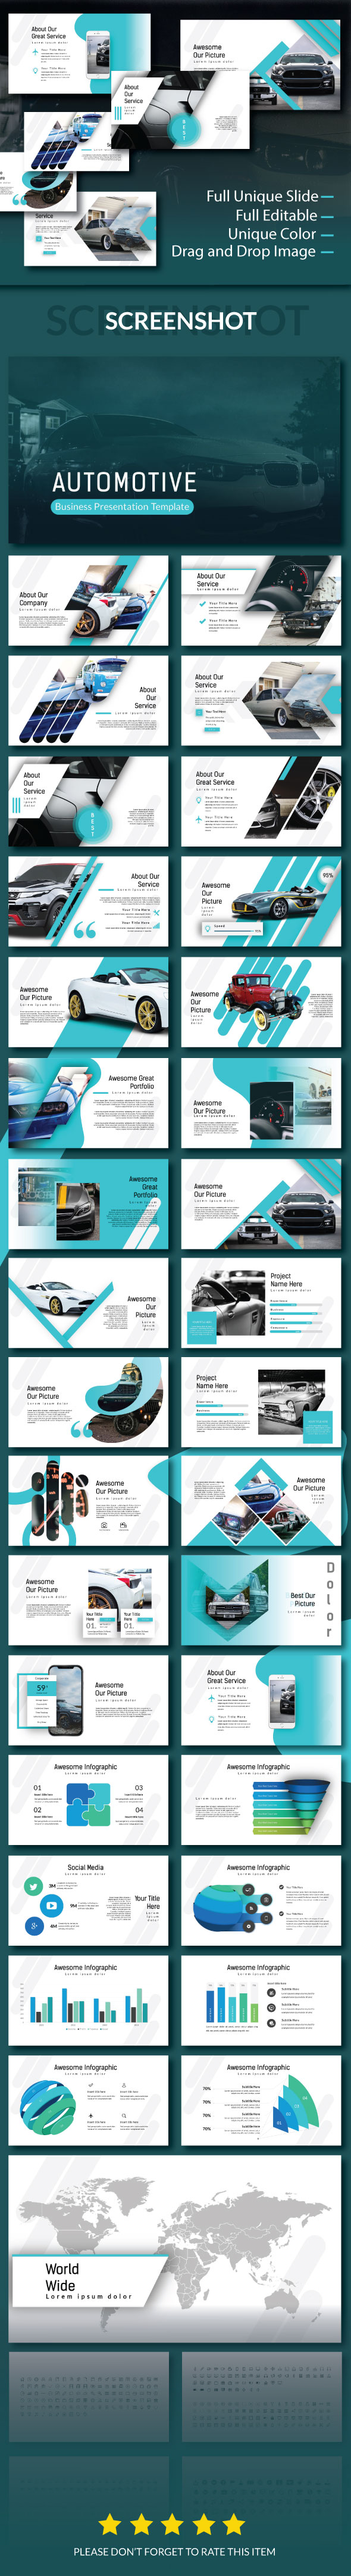 Automotive powerpoint template by spesifikstudio graphicriver automotive powerpoint template powerpoint templates presentation templates toneelgroepblik Choice Image